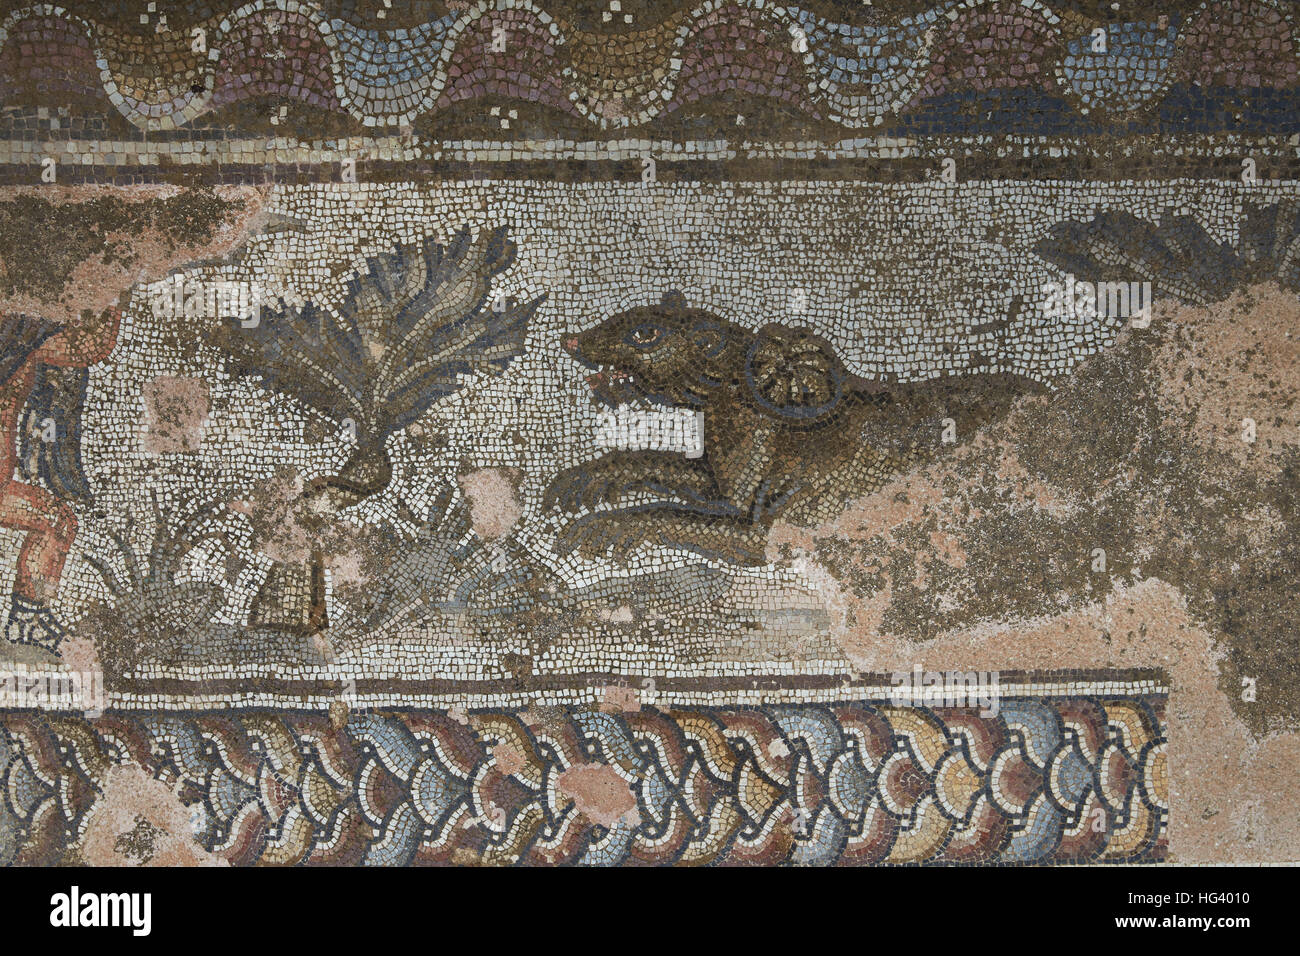 The mosaics of Nea Paphos, Cyprus. - Stock Image